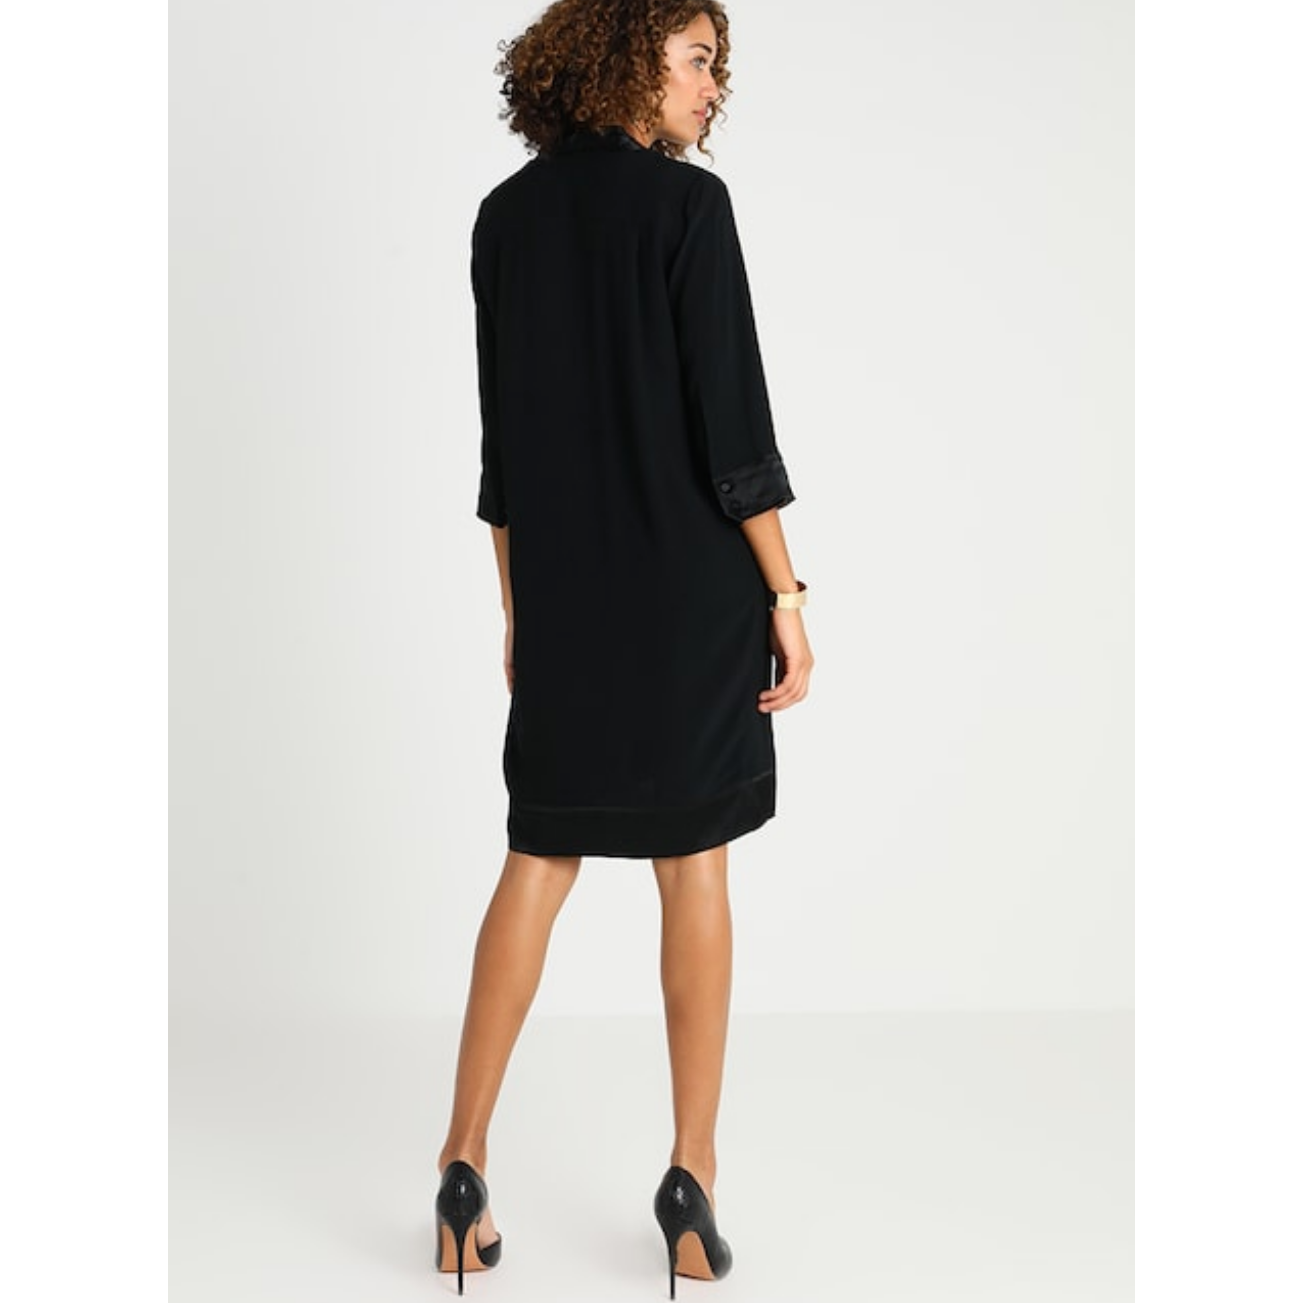 Noa Noa Dressy crepe Satin Edge Dress in Black (NN1-88651)  Also available in Plum